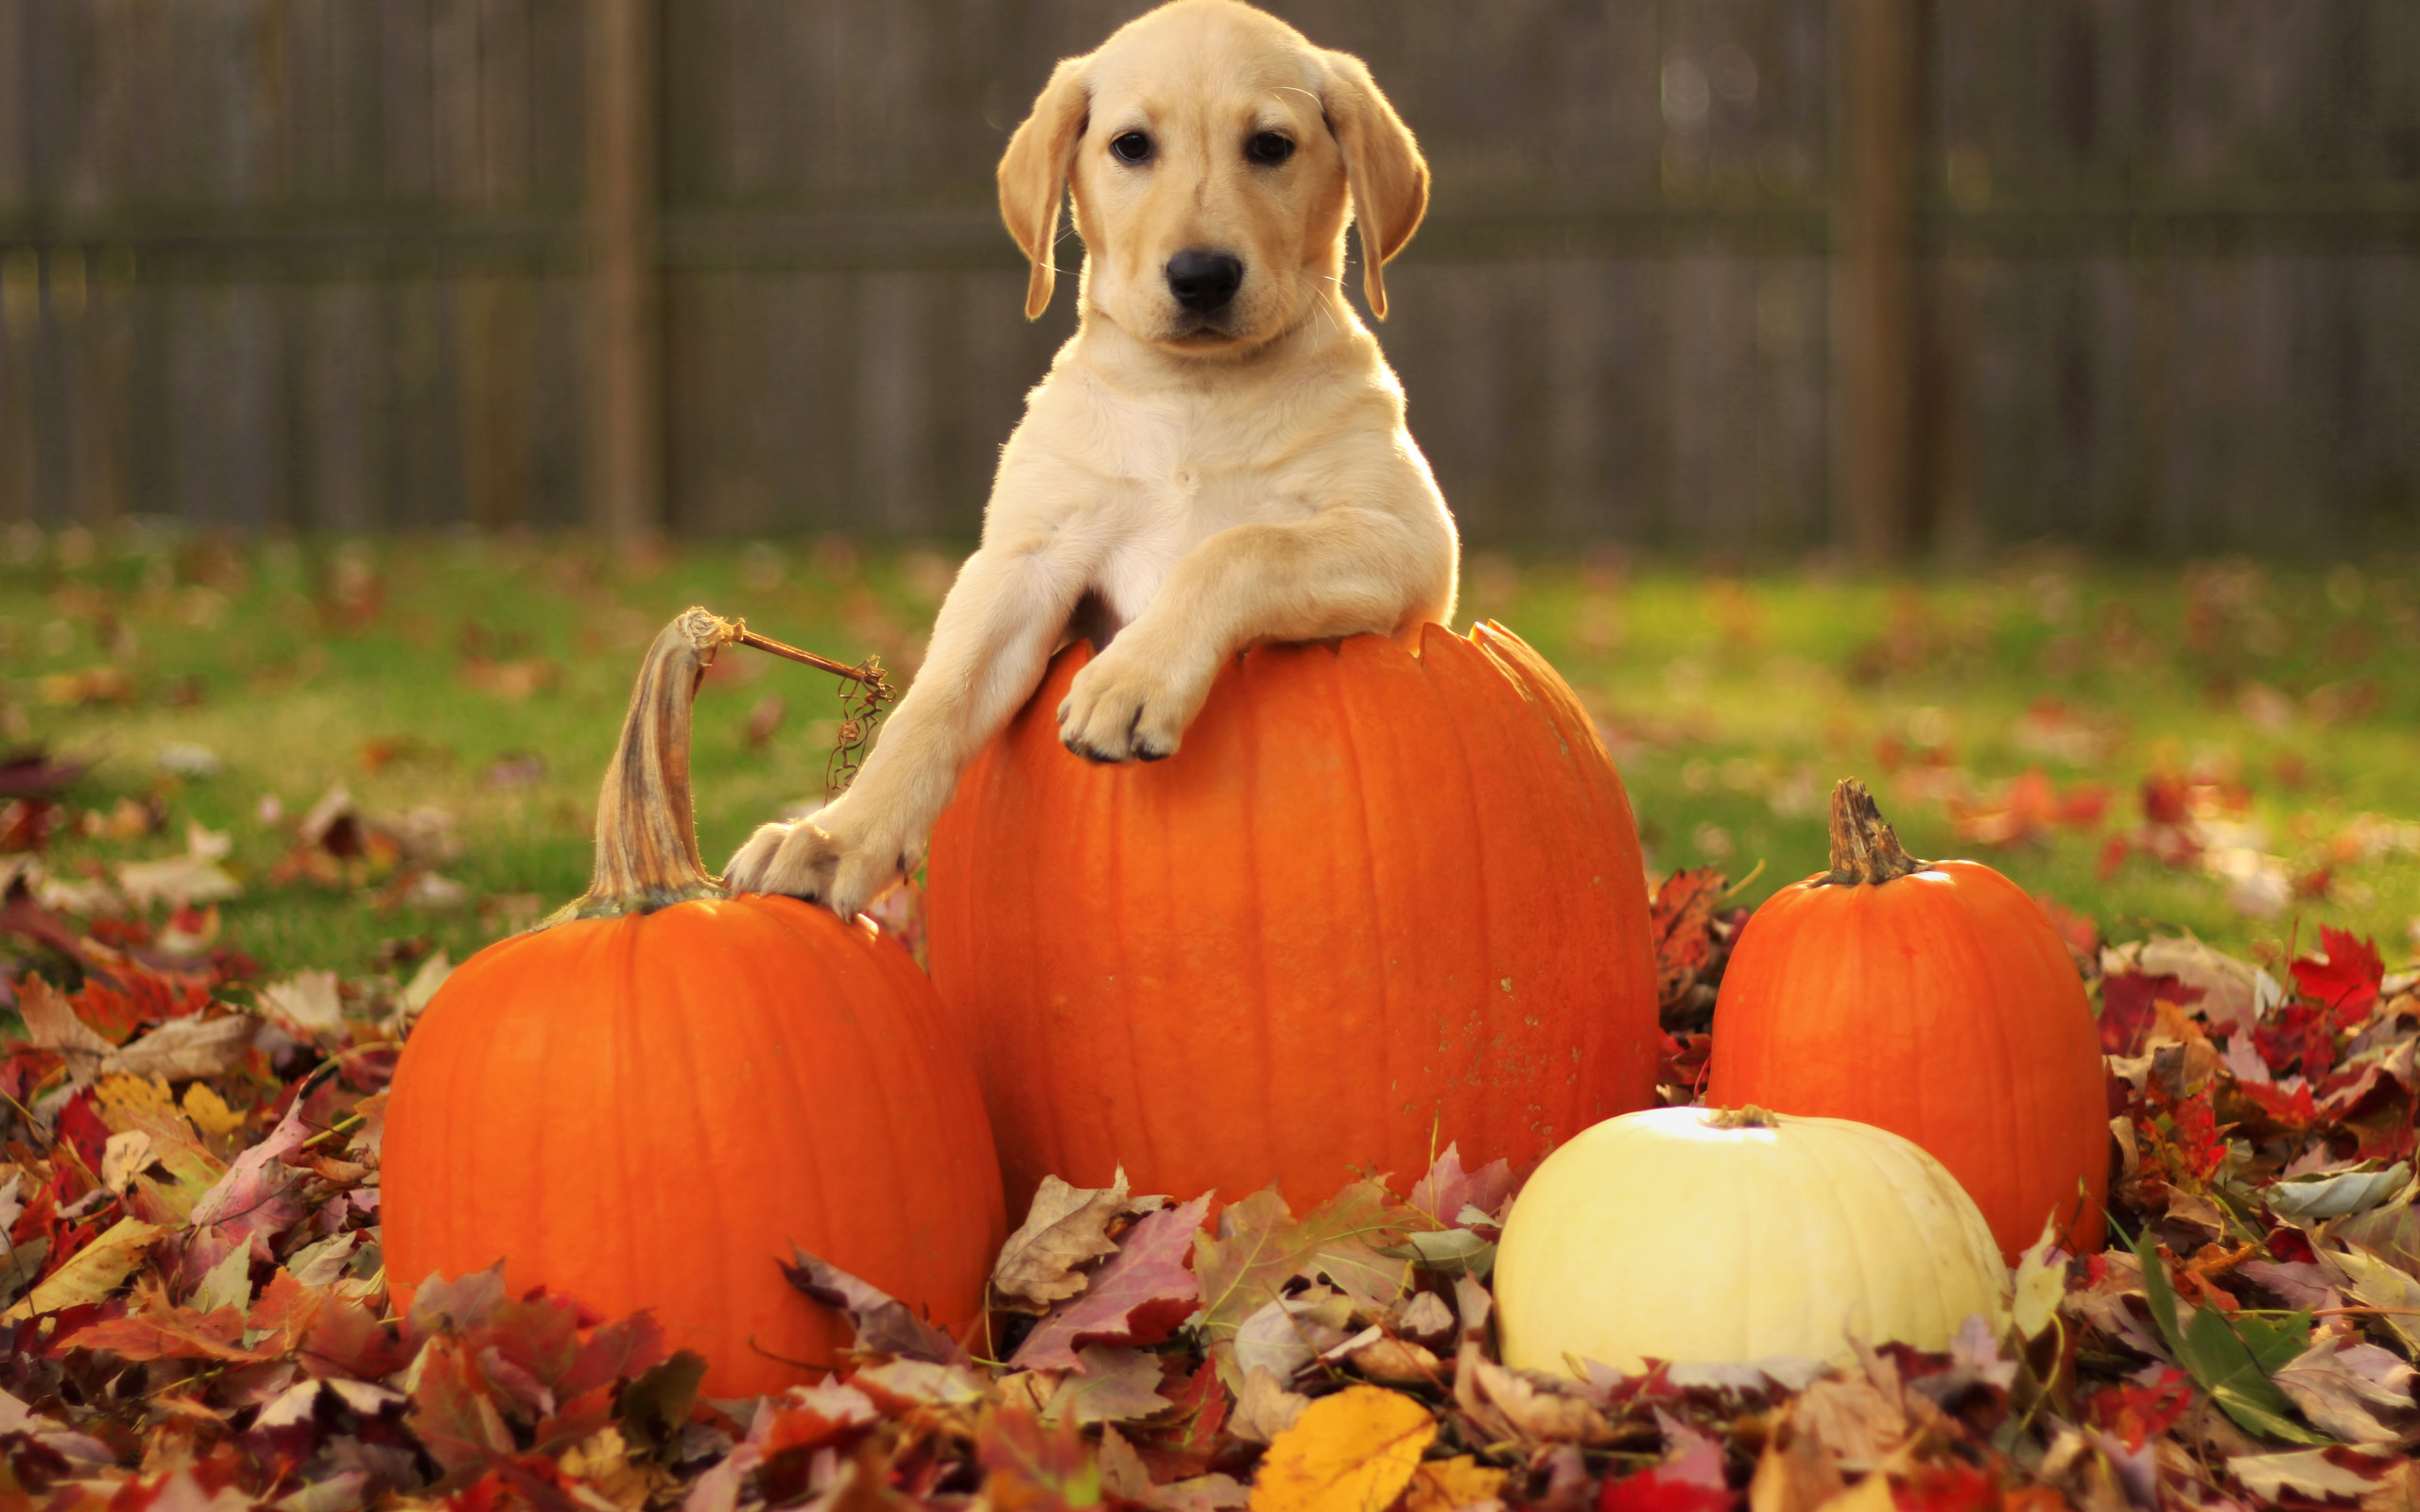 Autumn Free Wallpaper – A pumpkin and a..dog is a great wallpaper for